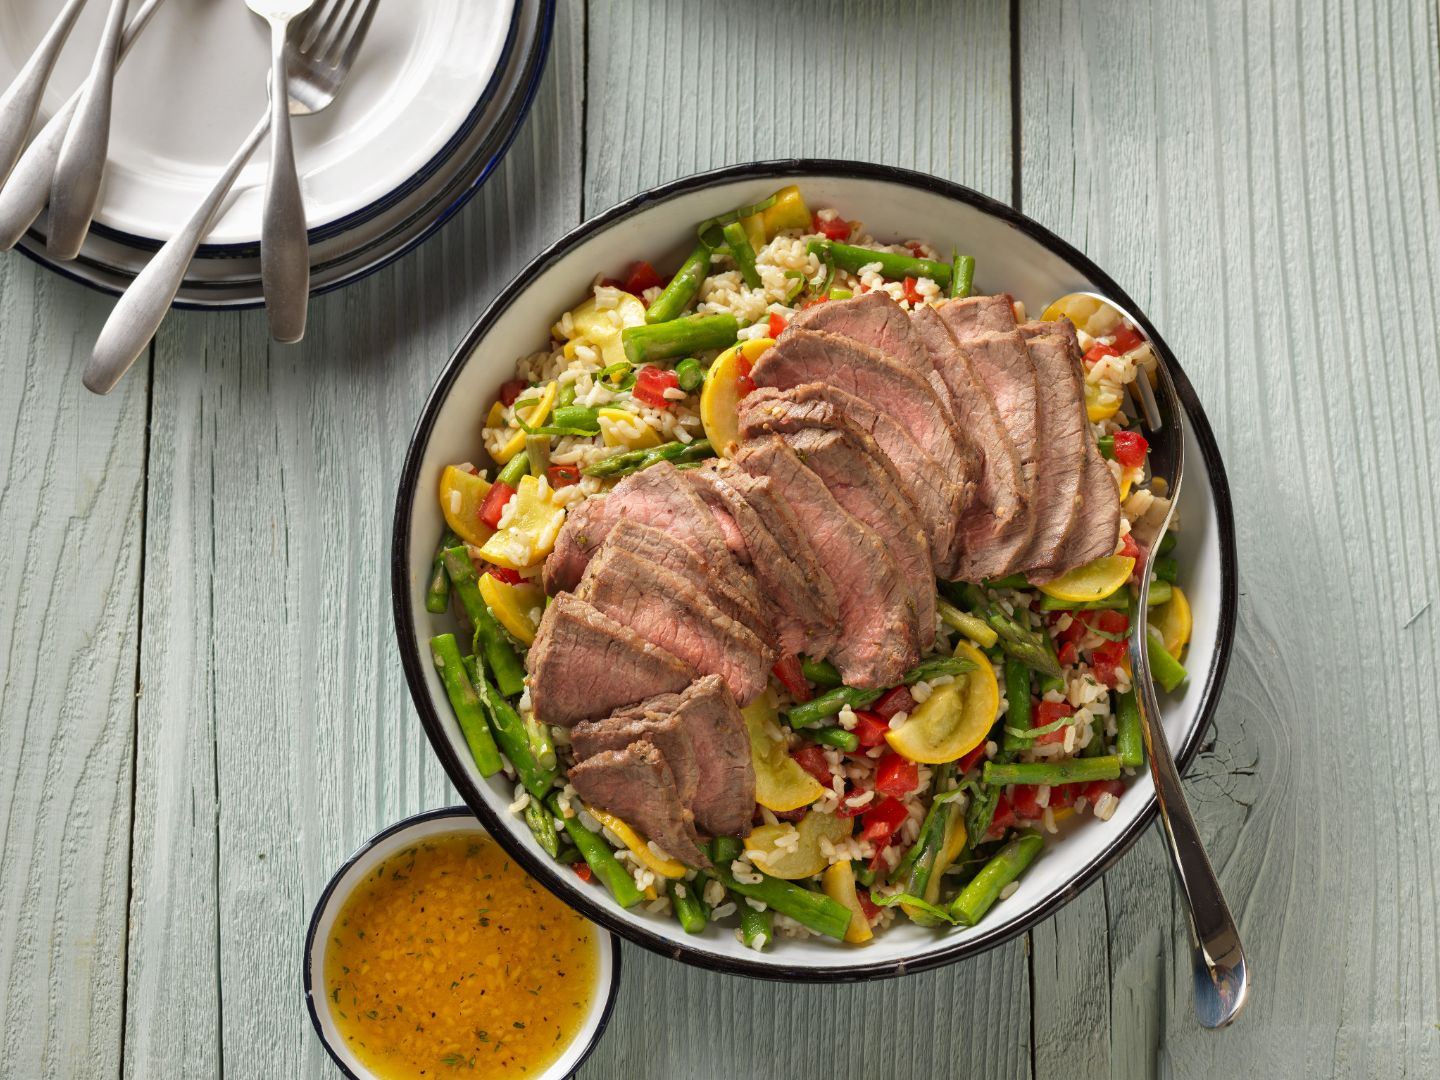 farmers-market-vegetable-beef-and-brown-rice-salad